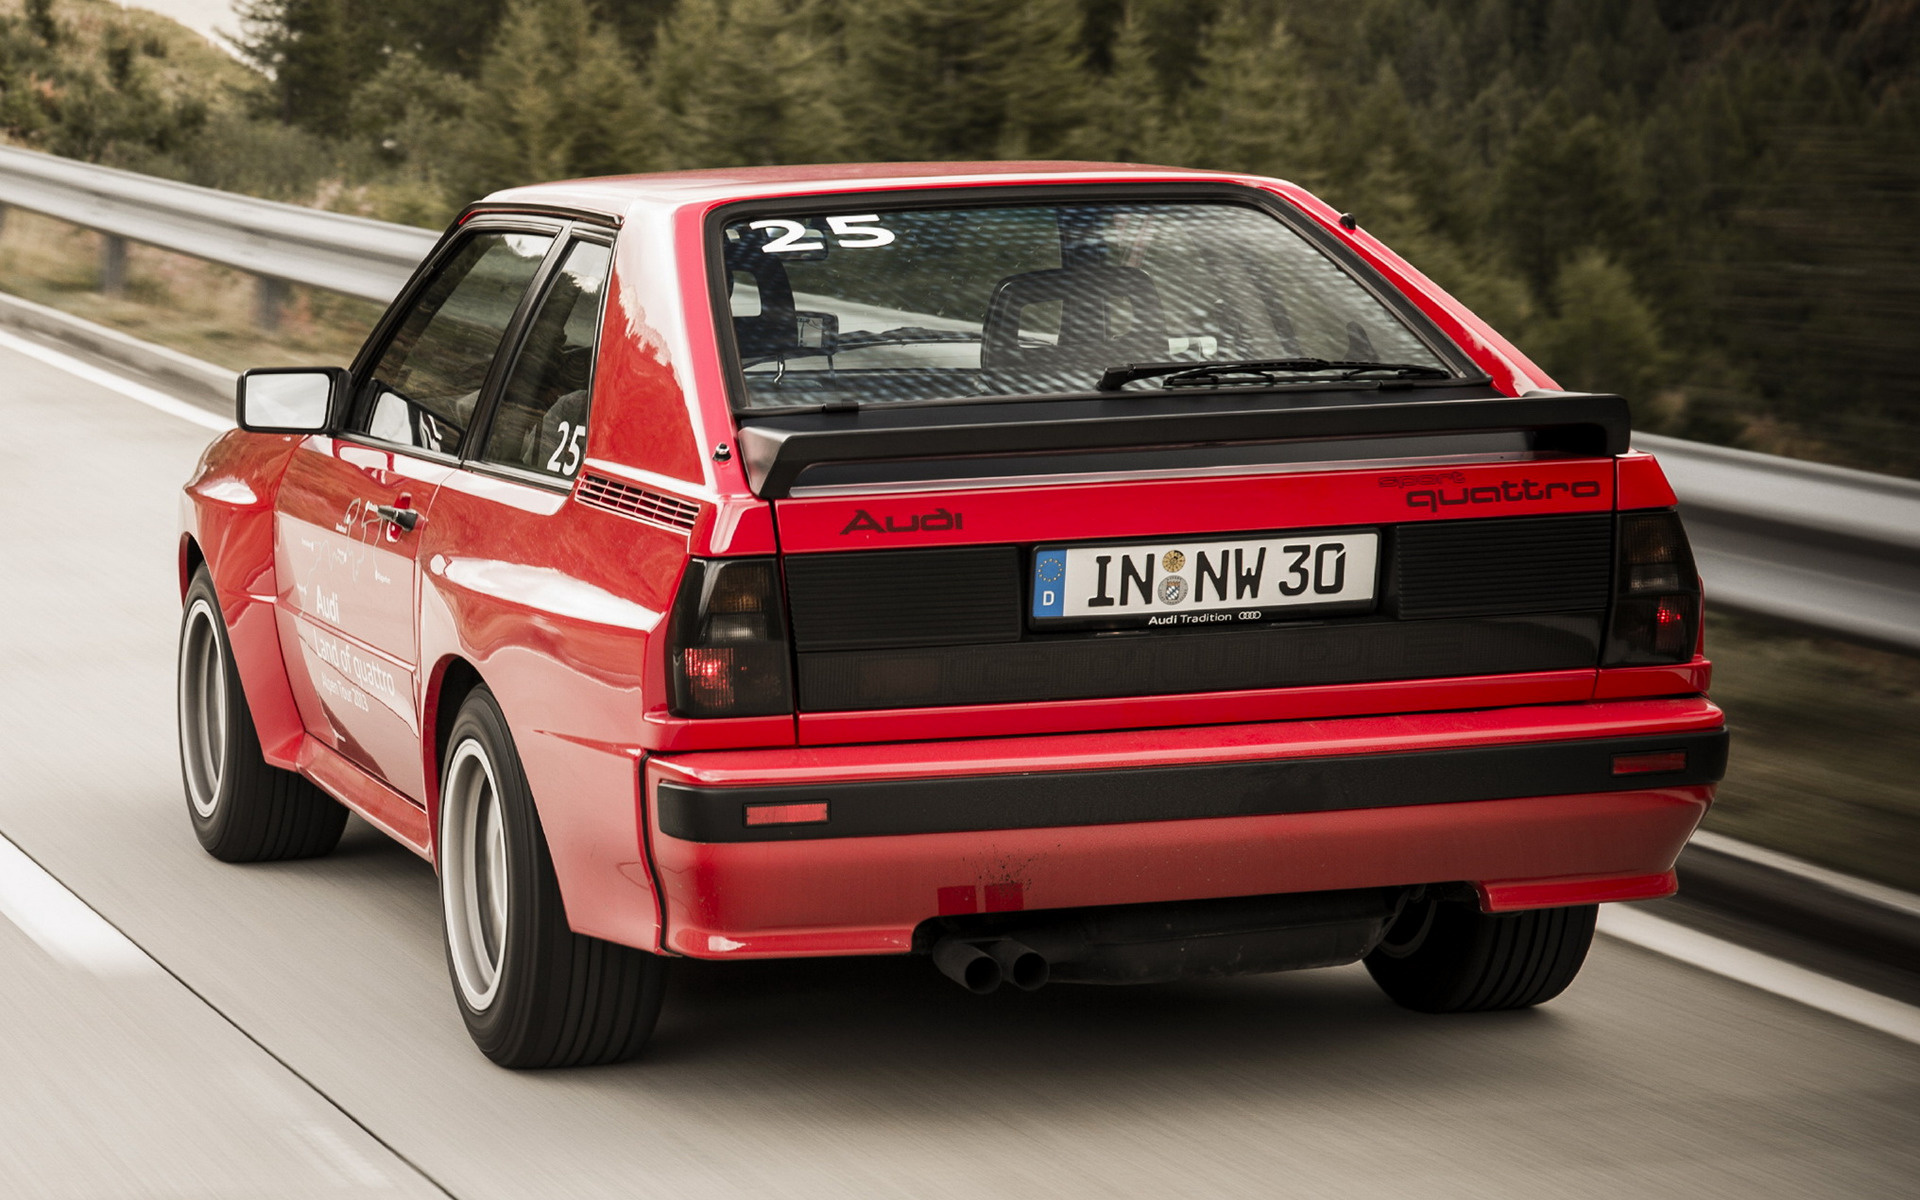 Audi Sport Wallpaper Iphone: 1984 Audi Quattro Sport - Wallpapers And HD Images